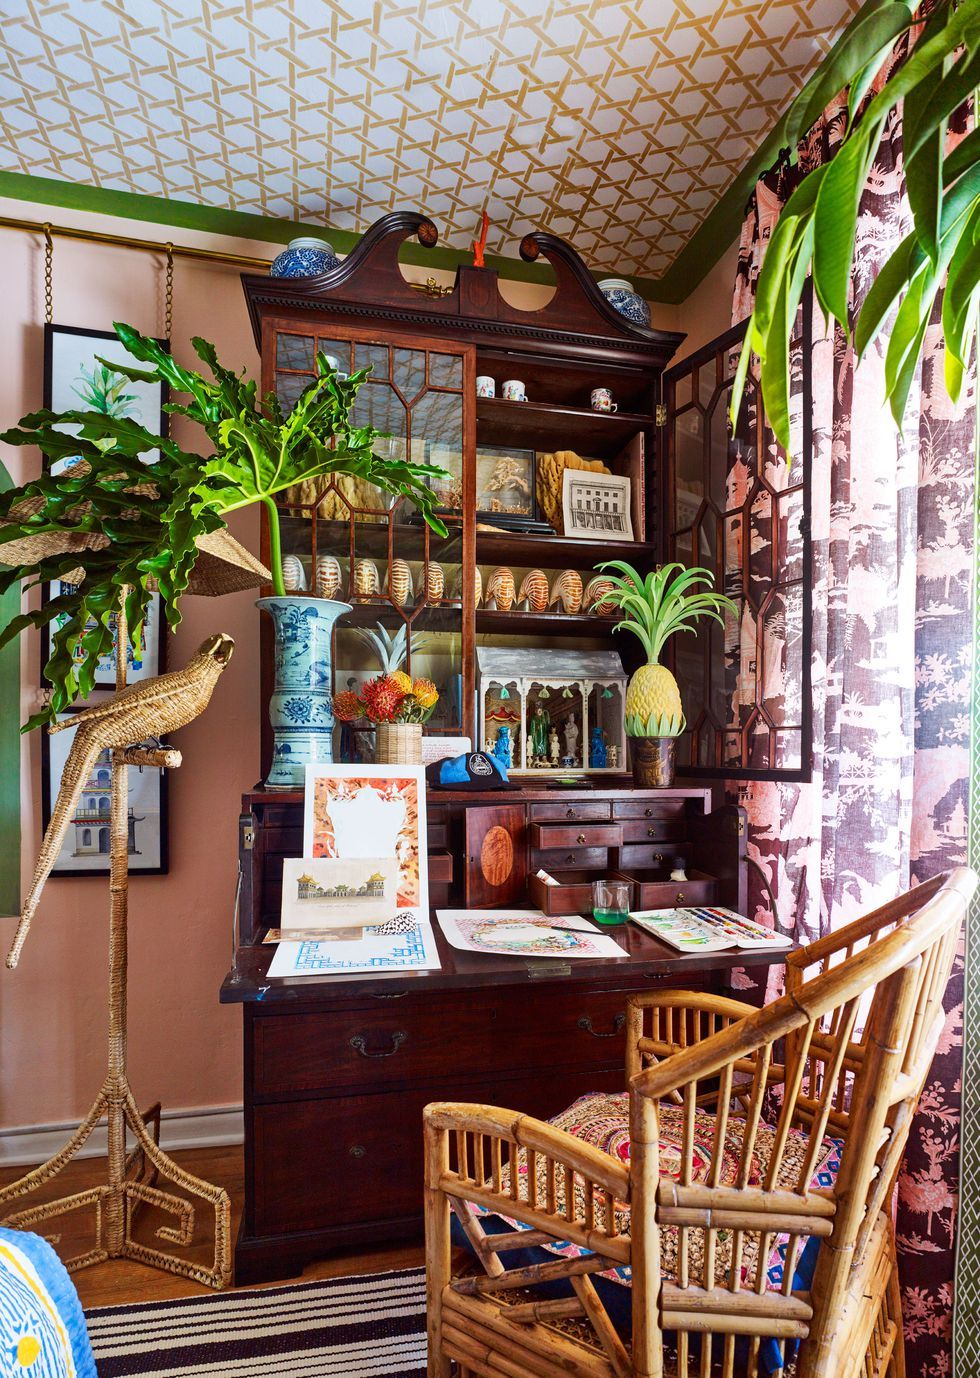 This Entire Palm Beach Apartment Was Decorated for Under